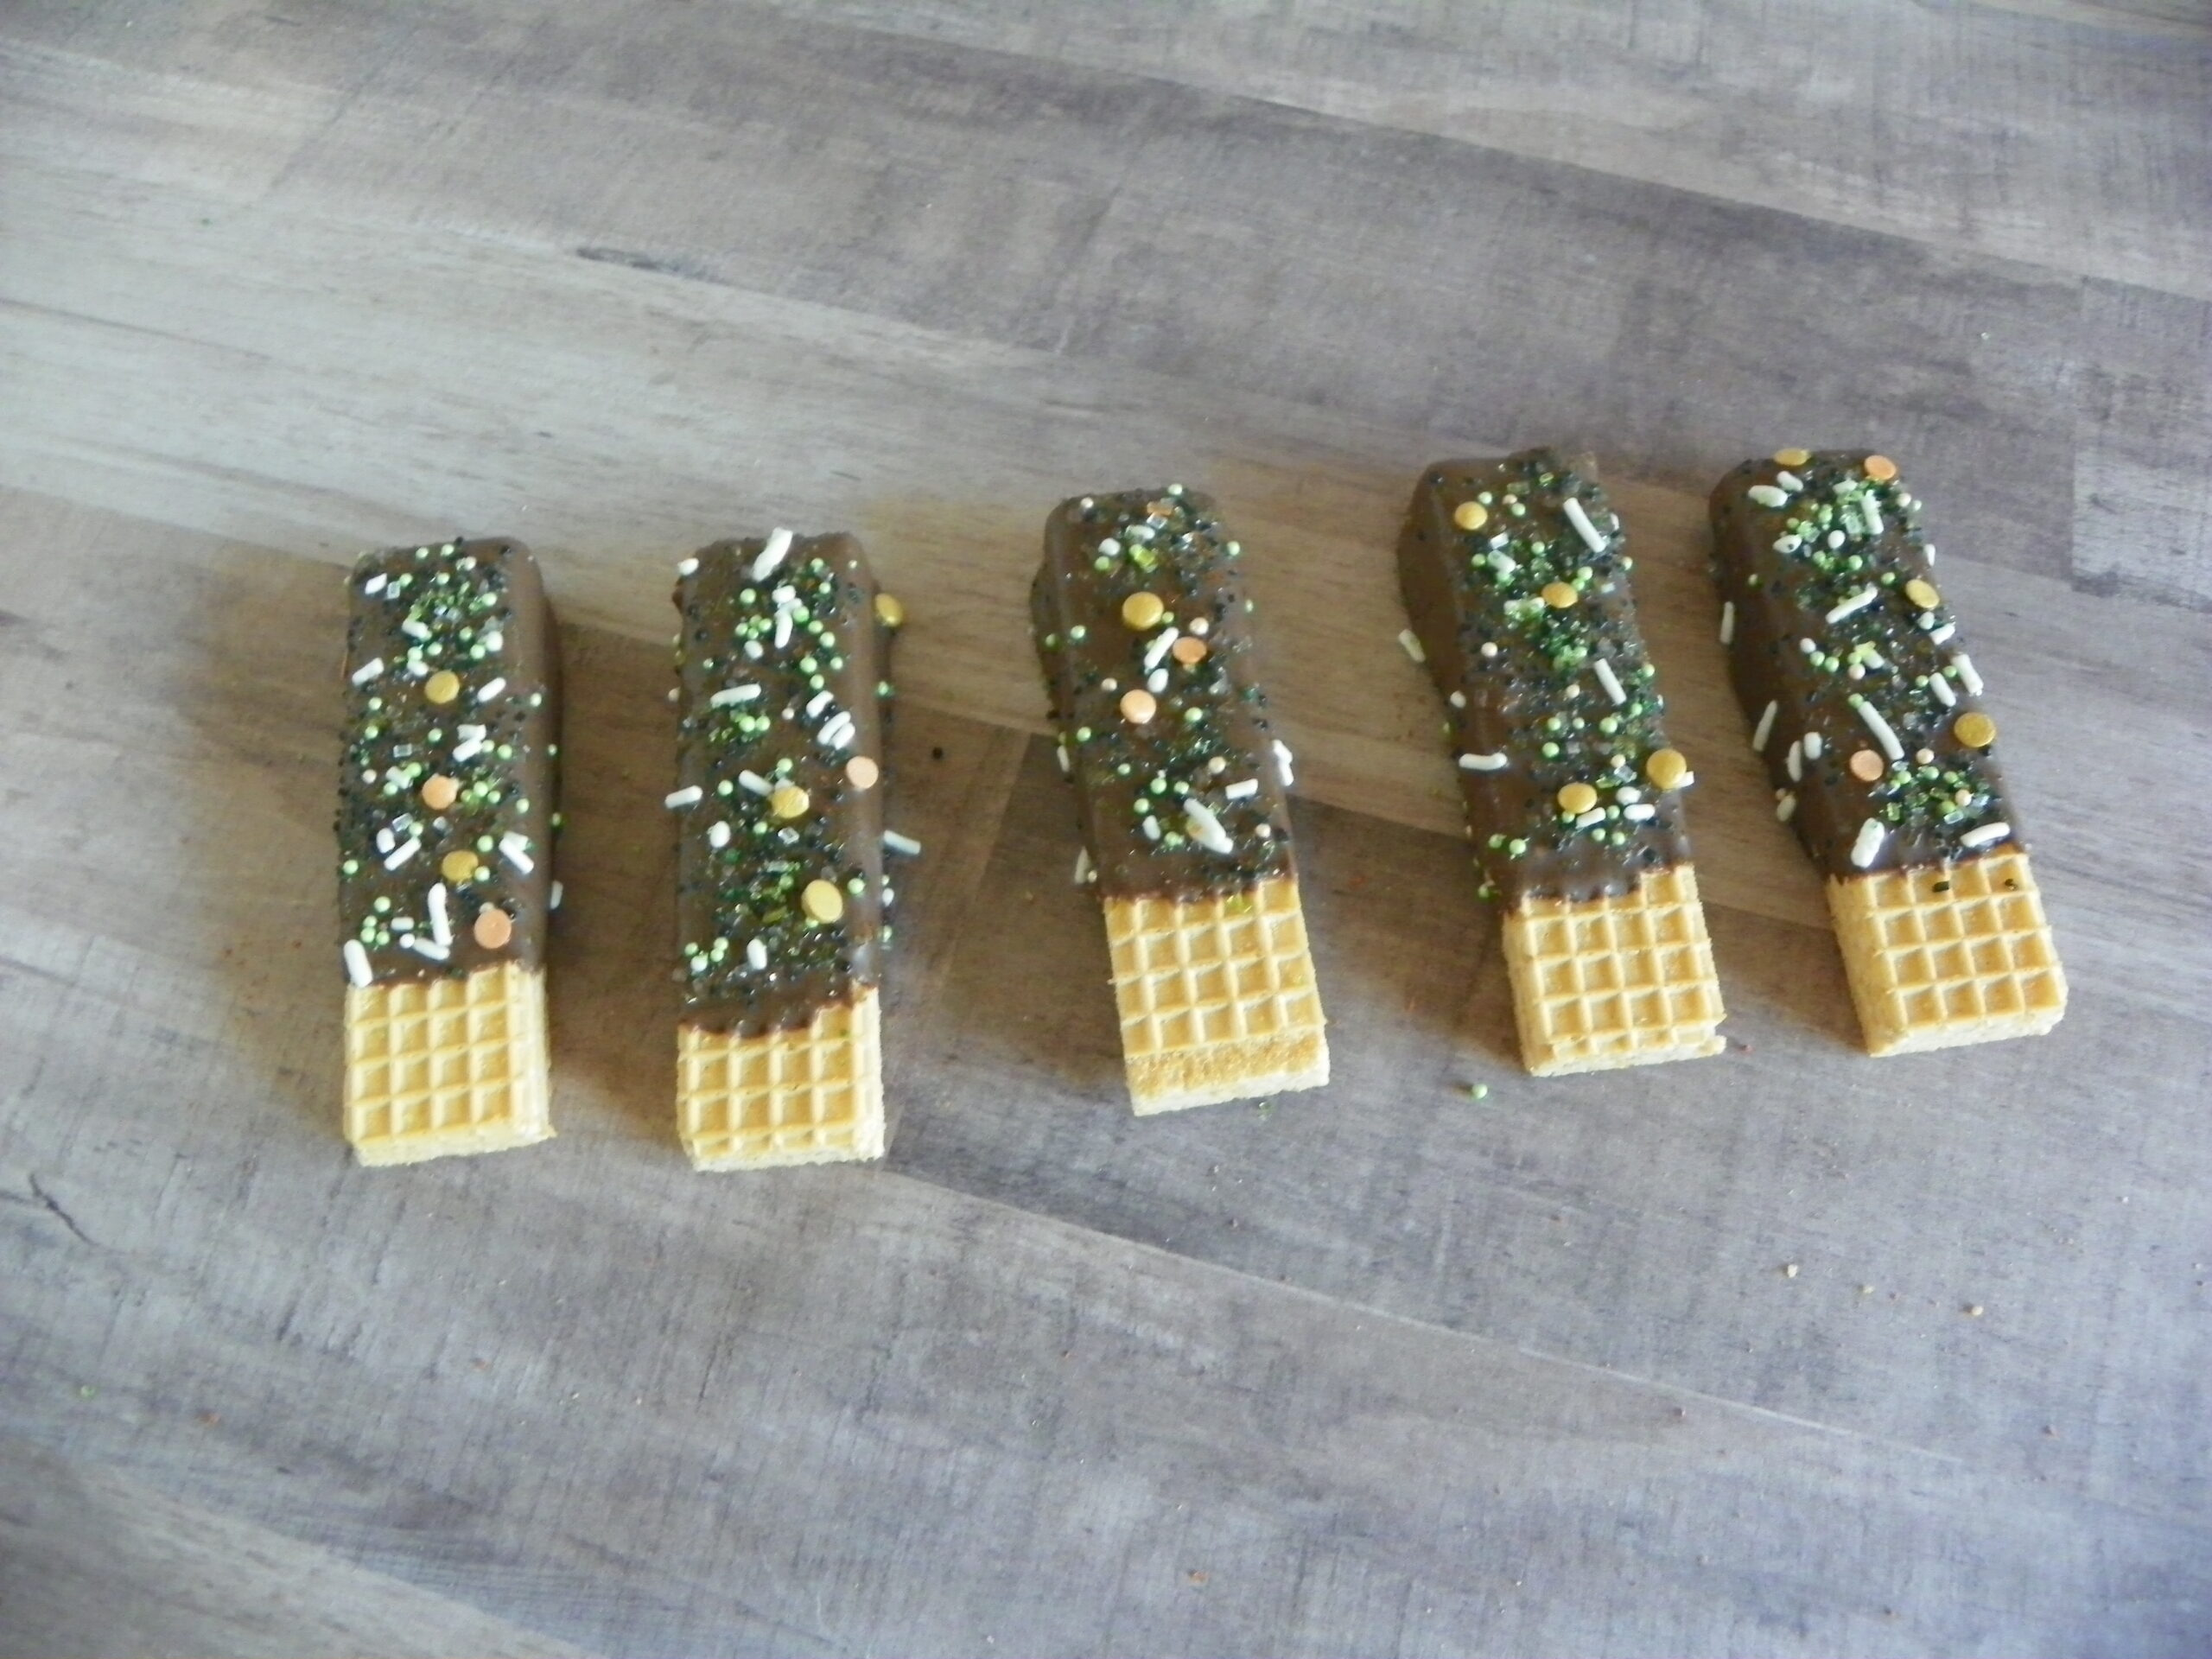 Chocolate Covered Vanilla Wafers with Sprinkles